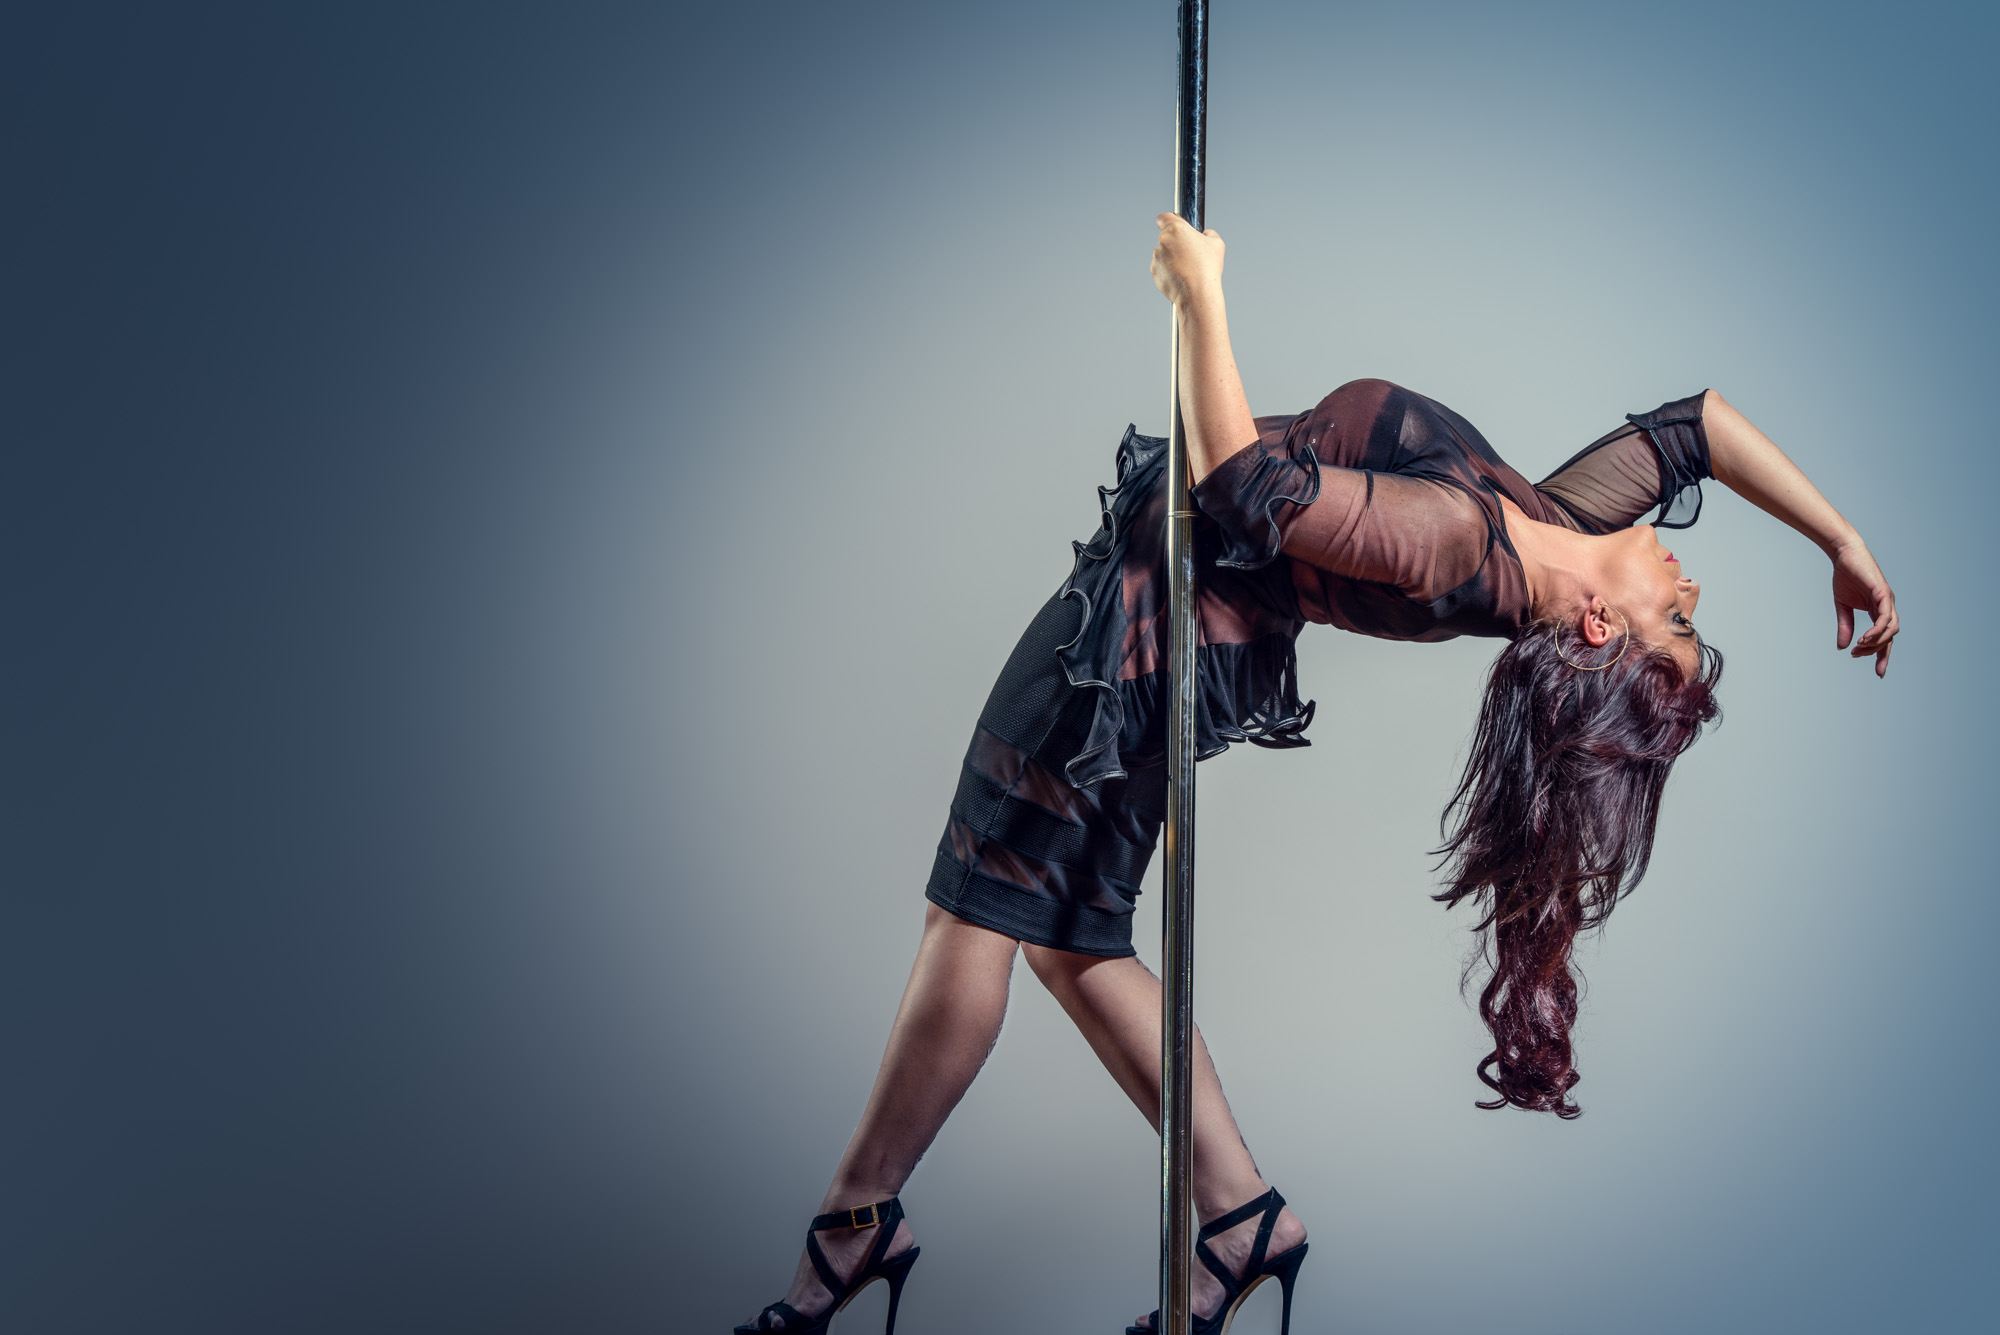 Kay_Penney_Pole_passion_35